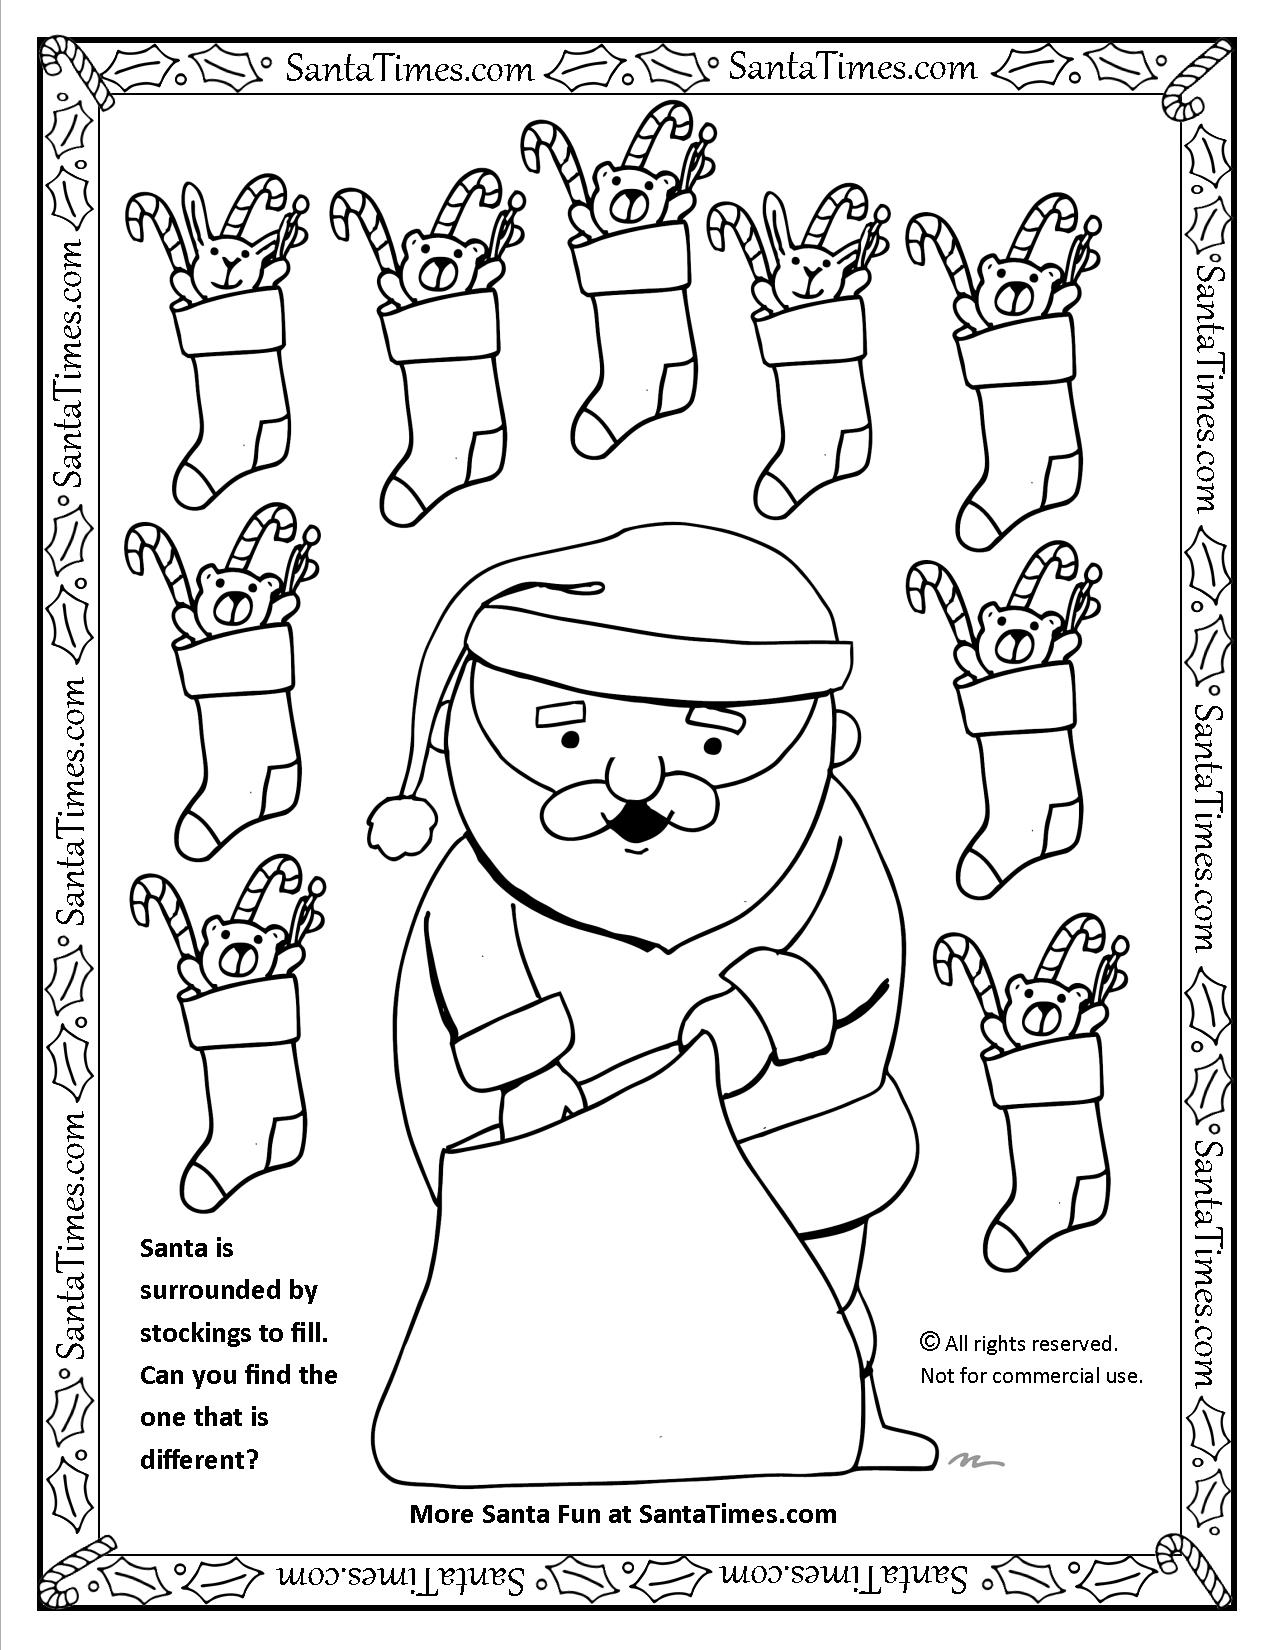 Santa Fills Stockings Christmas Activity and printable Coloring page